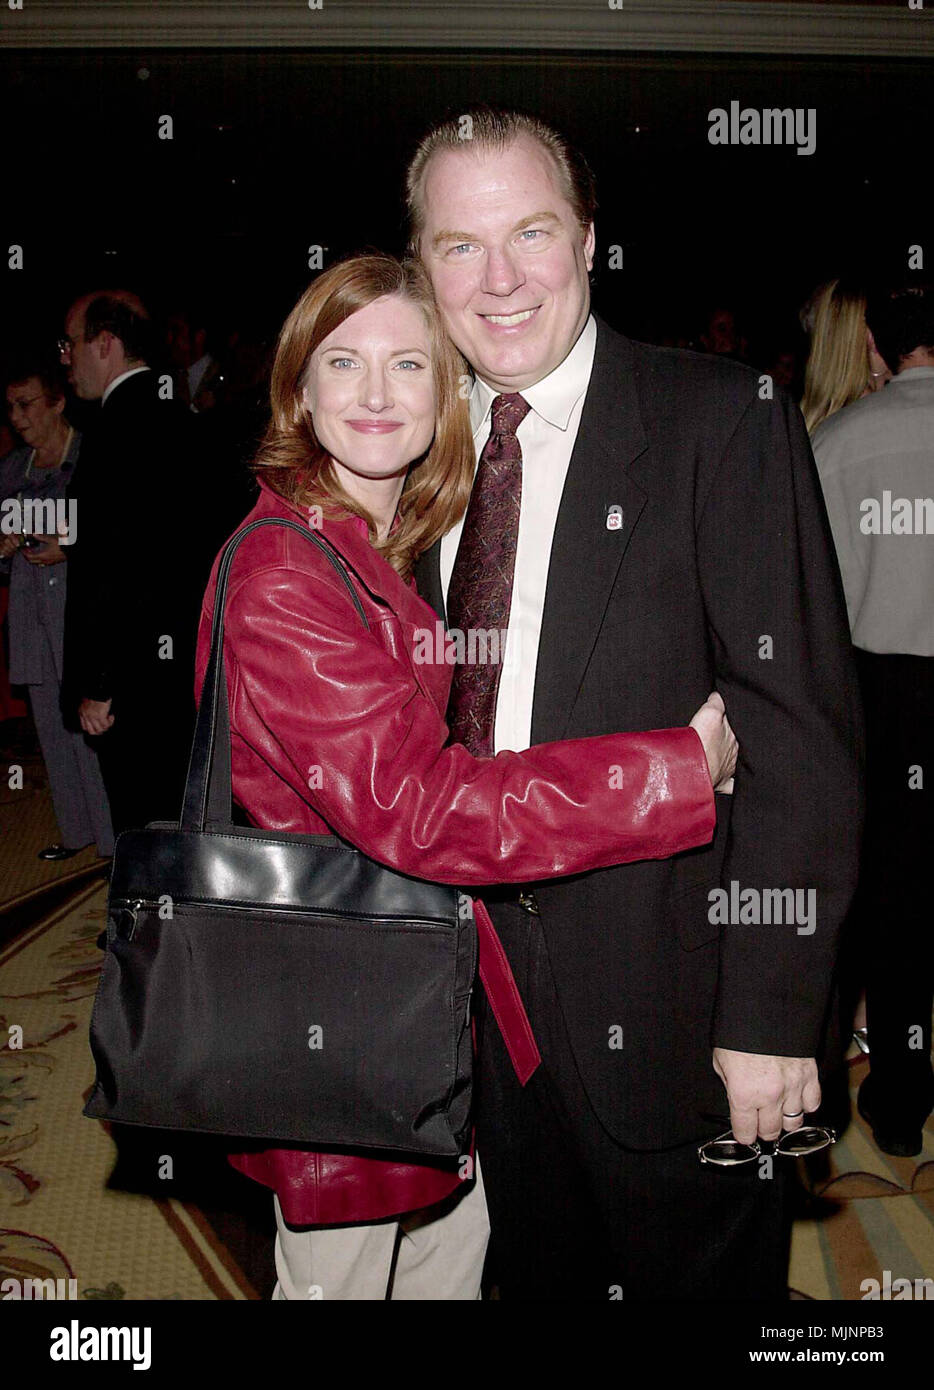 """02 Oct 2000, Los Angeles, California, USA --- Original caption: Dinner of Champions - Organized by the National Multiple Sclerosis Society at the Century Plaza. --- """" Tsuni / Bourquard """"Michael McKean and Annette O'Toole Michael McKean and Annette O'Toole Michael McKean and Annette O'Toole Event in Hollywood Life - California,  Red Carpet Event, Vertical, USA, Film Industry, Celebrities,  Photography, Bestof, Arts Culture and Entertainment, Topix  Celebrities fashion /  from the Red Carpet-1994-2000, one person, Vertical, Best of, Hollywood Life, Event in Hollywood Life - California,  Red Carp Stock Photo"""